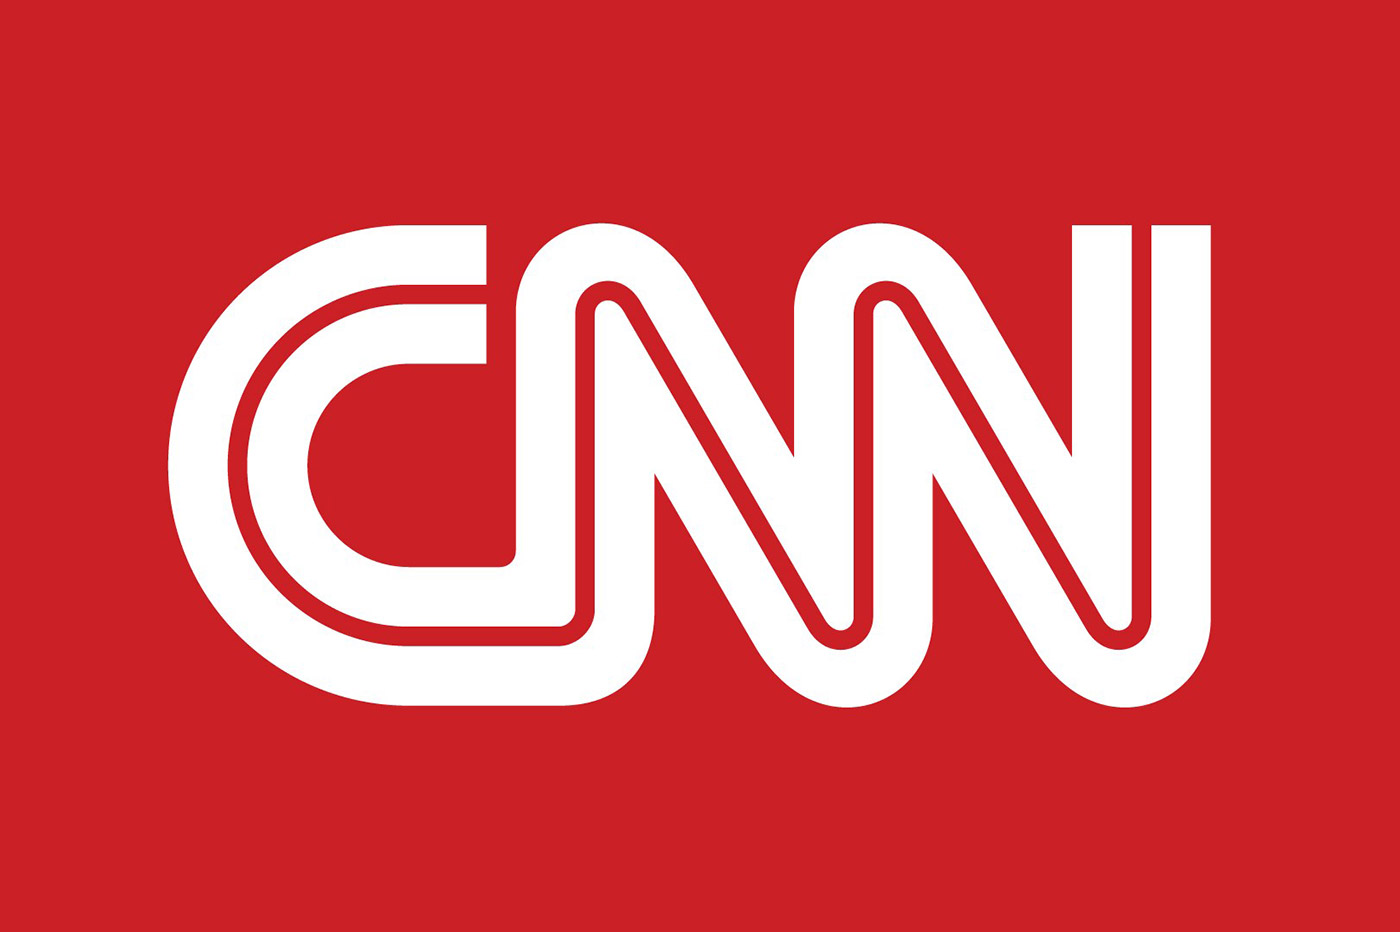 Smile On Fridays secured coverage in CNN for Red Canary!